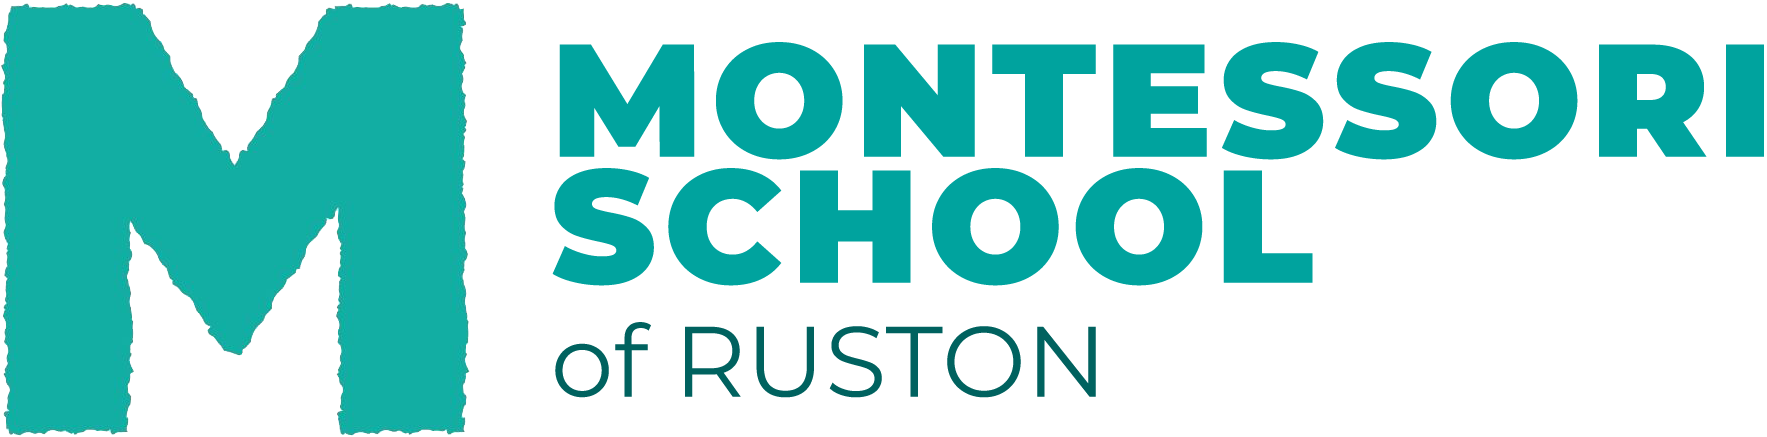 Montessori School of Ruston